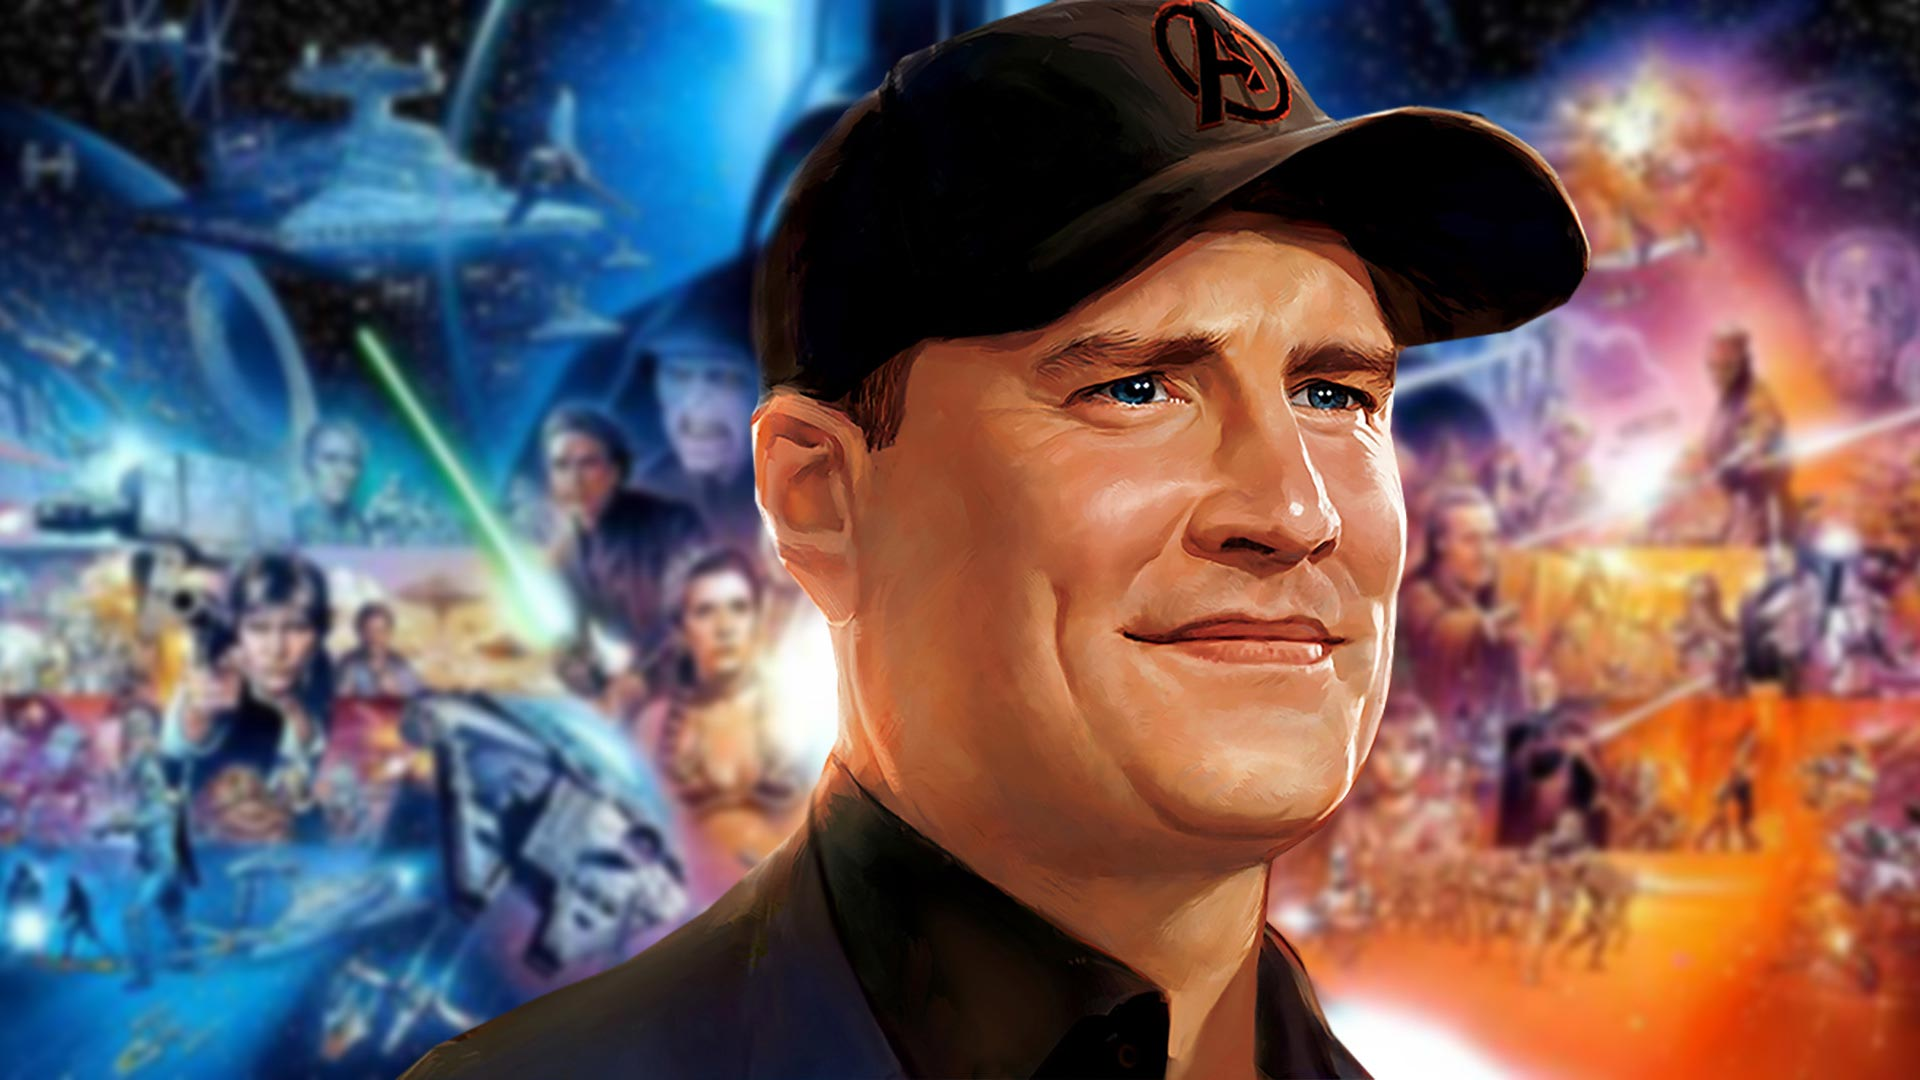 Kevin Feige Star Wars Announcement Breakdown